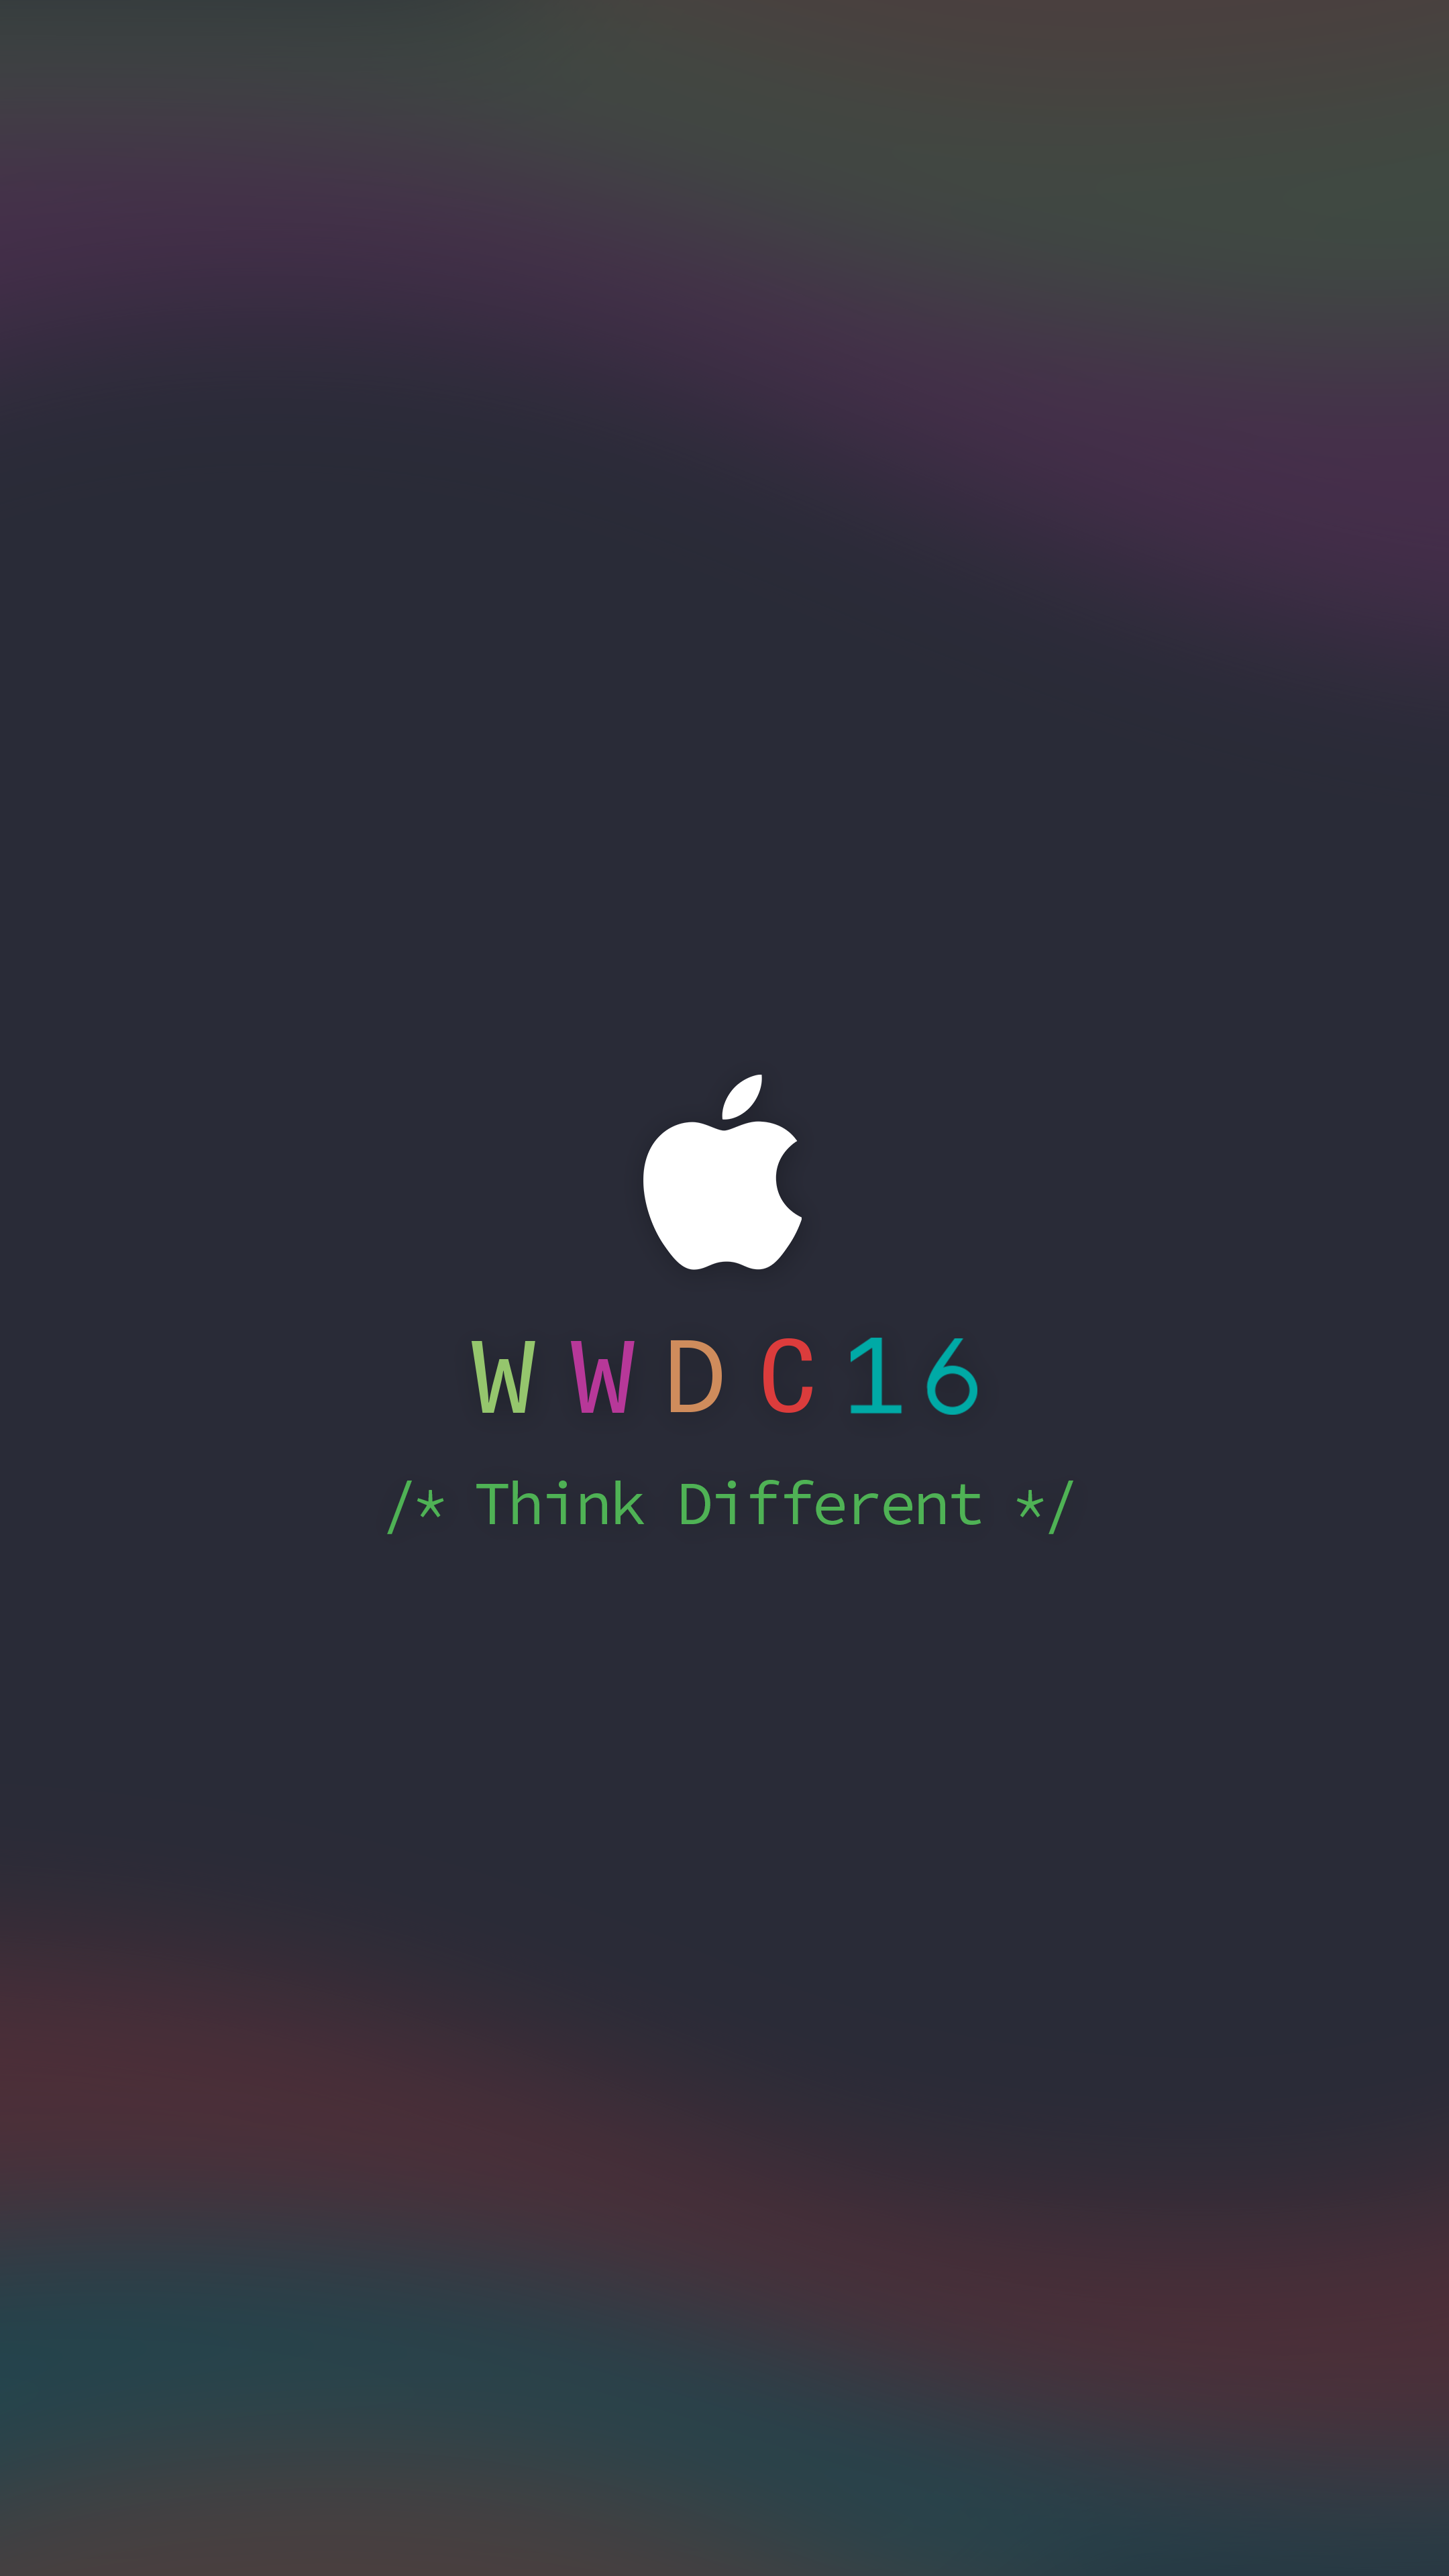 FlareZephyr WWDC 2016 wallpaper 2